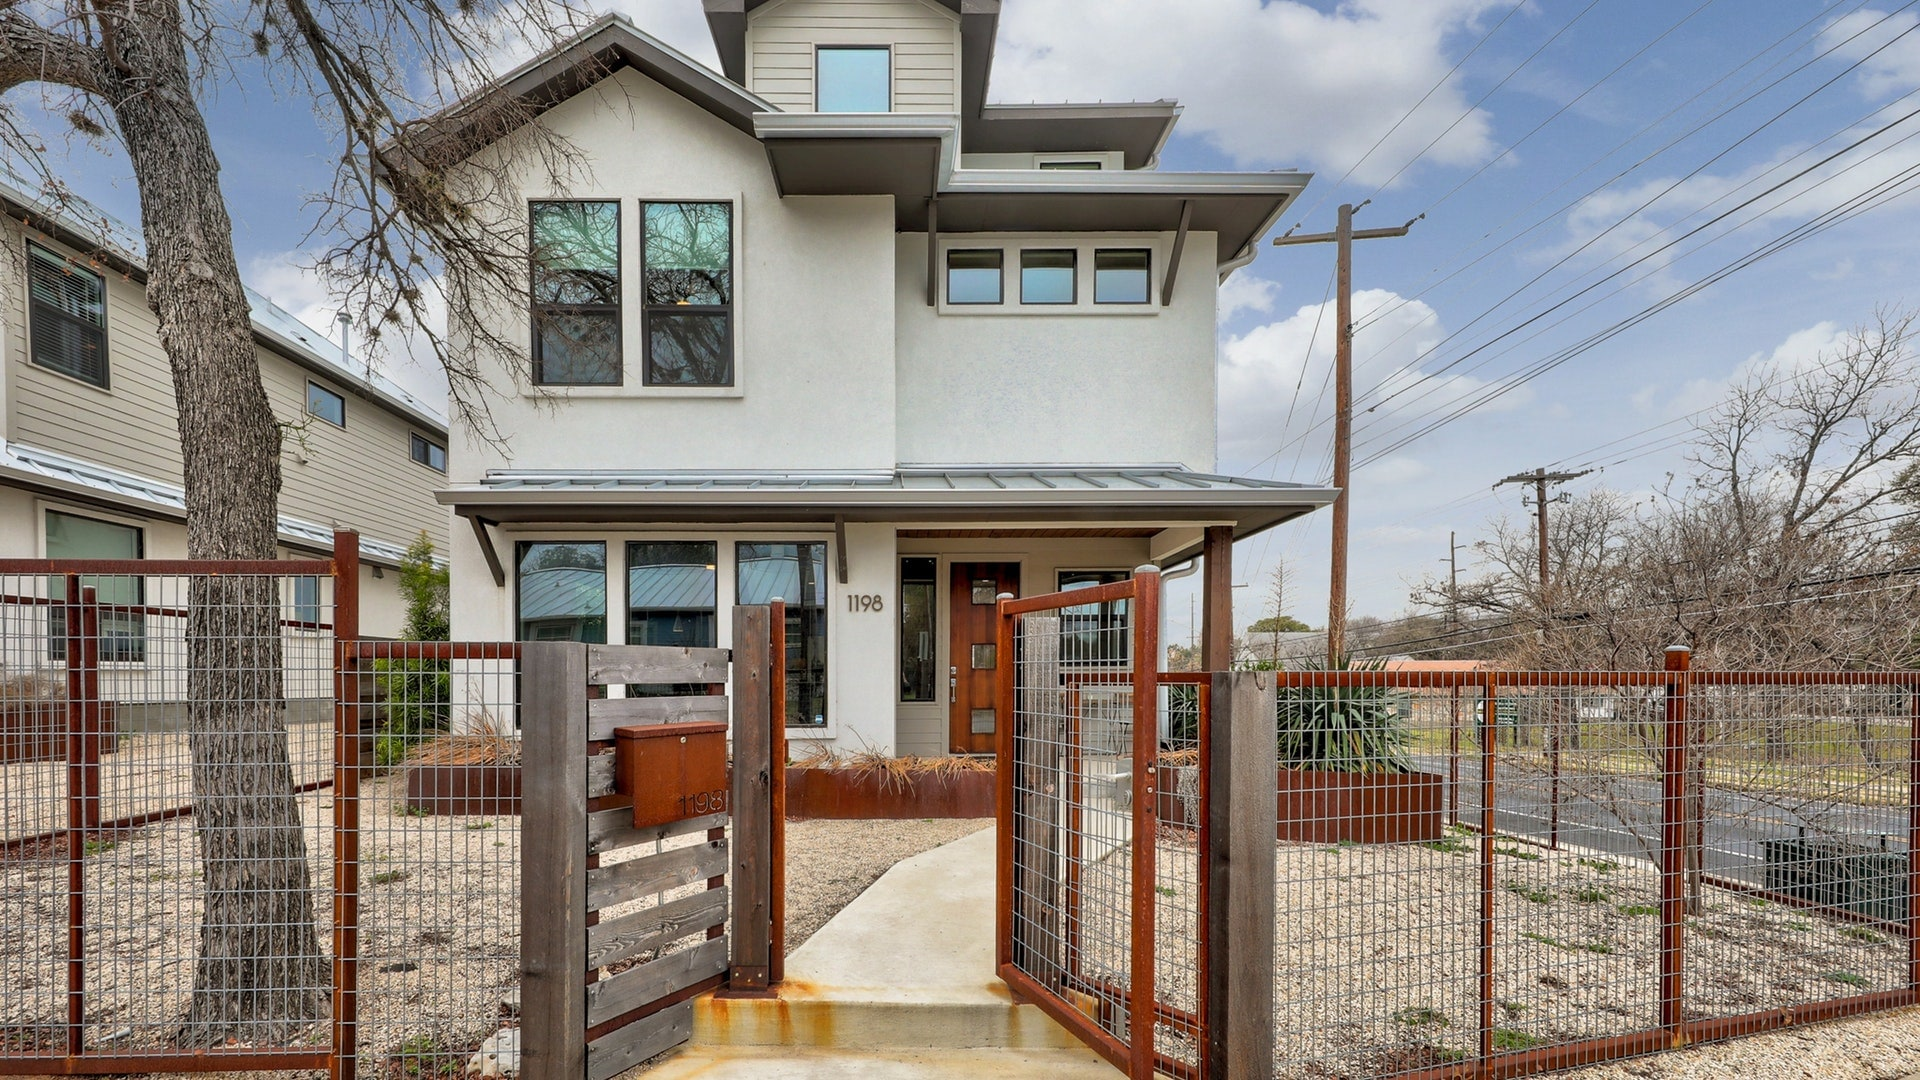 Stylish Three Story Home w/ Downtown Views